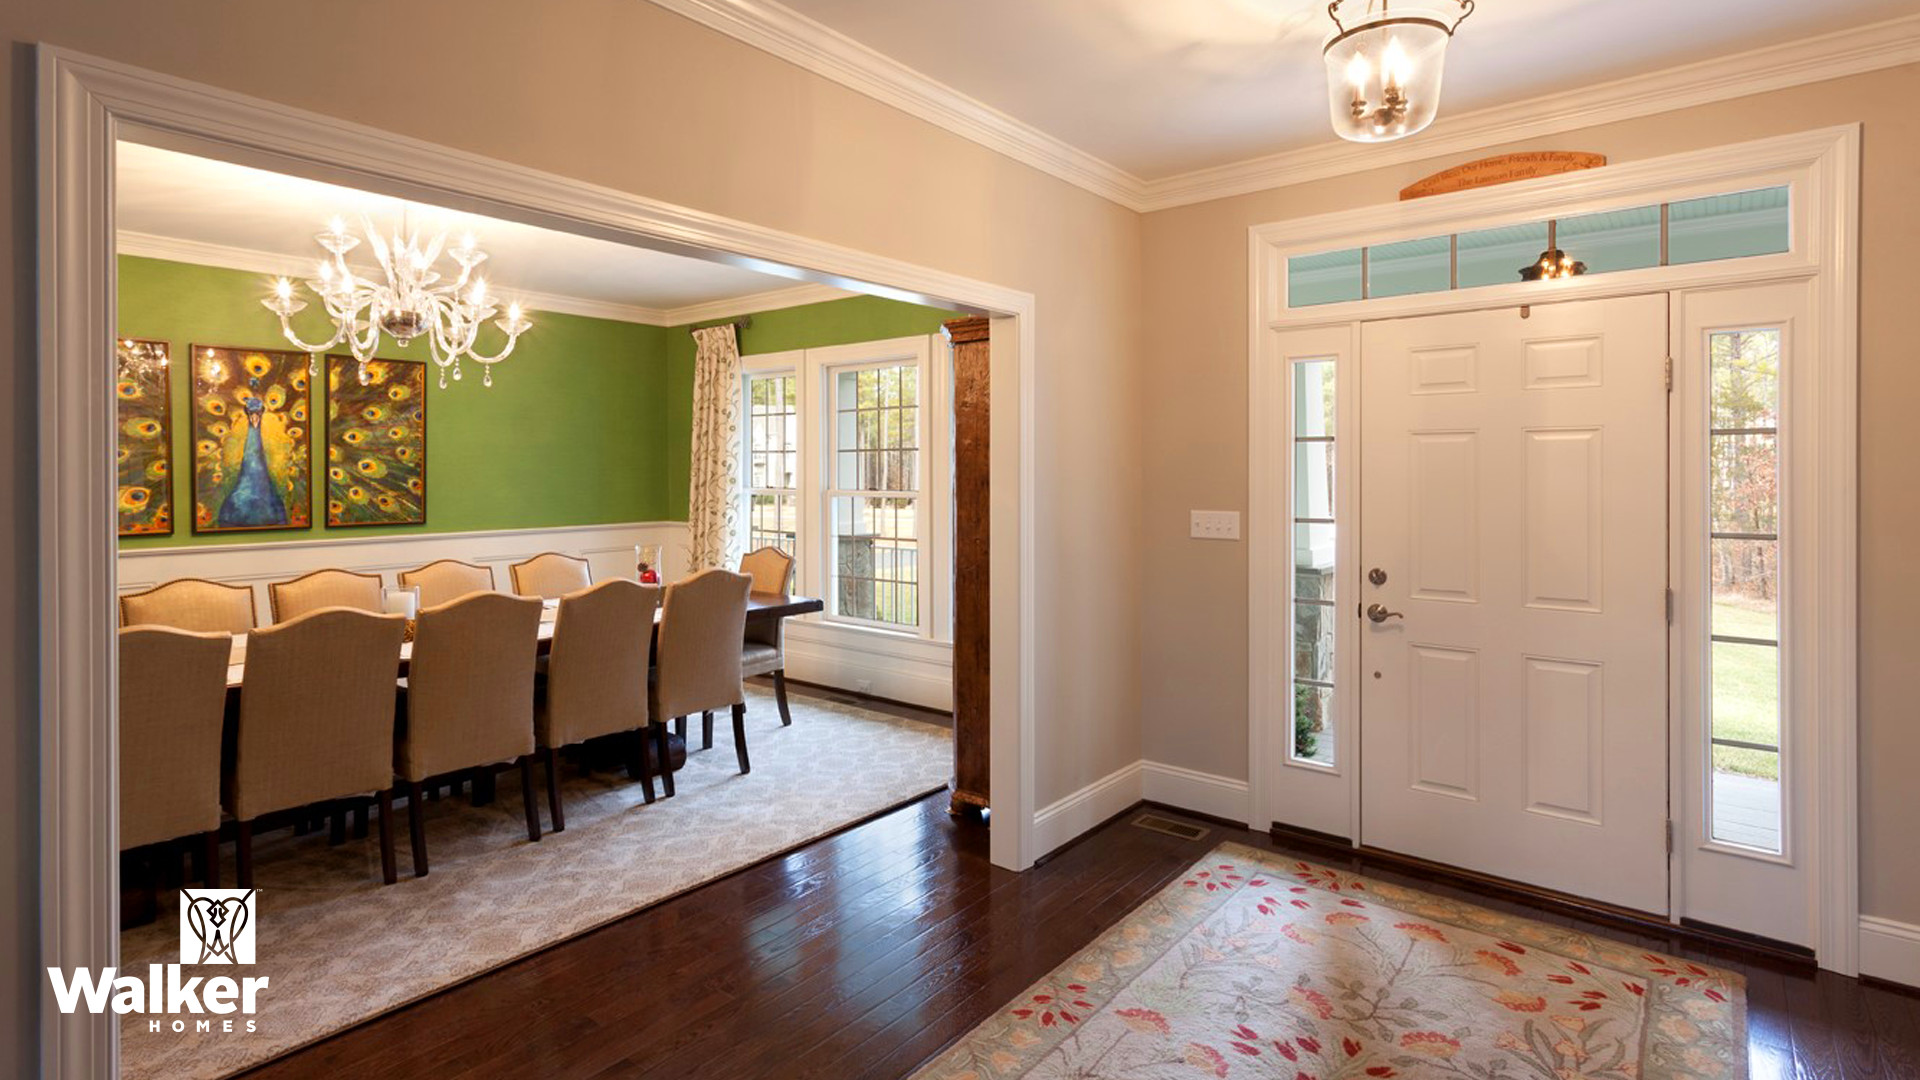 A Dining Room from a custom home design by Walker Homes in Glen Allen, Virginia